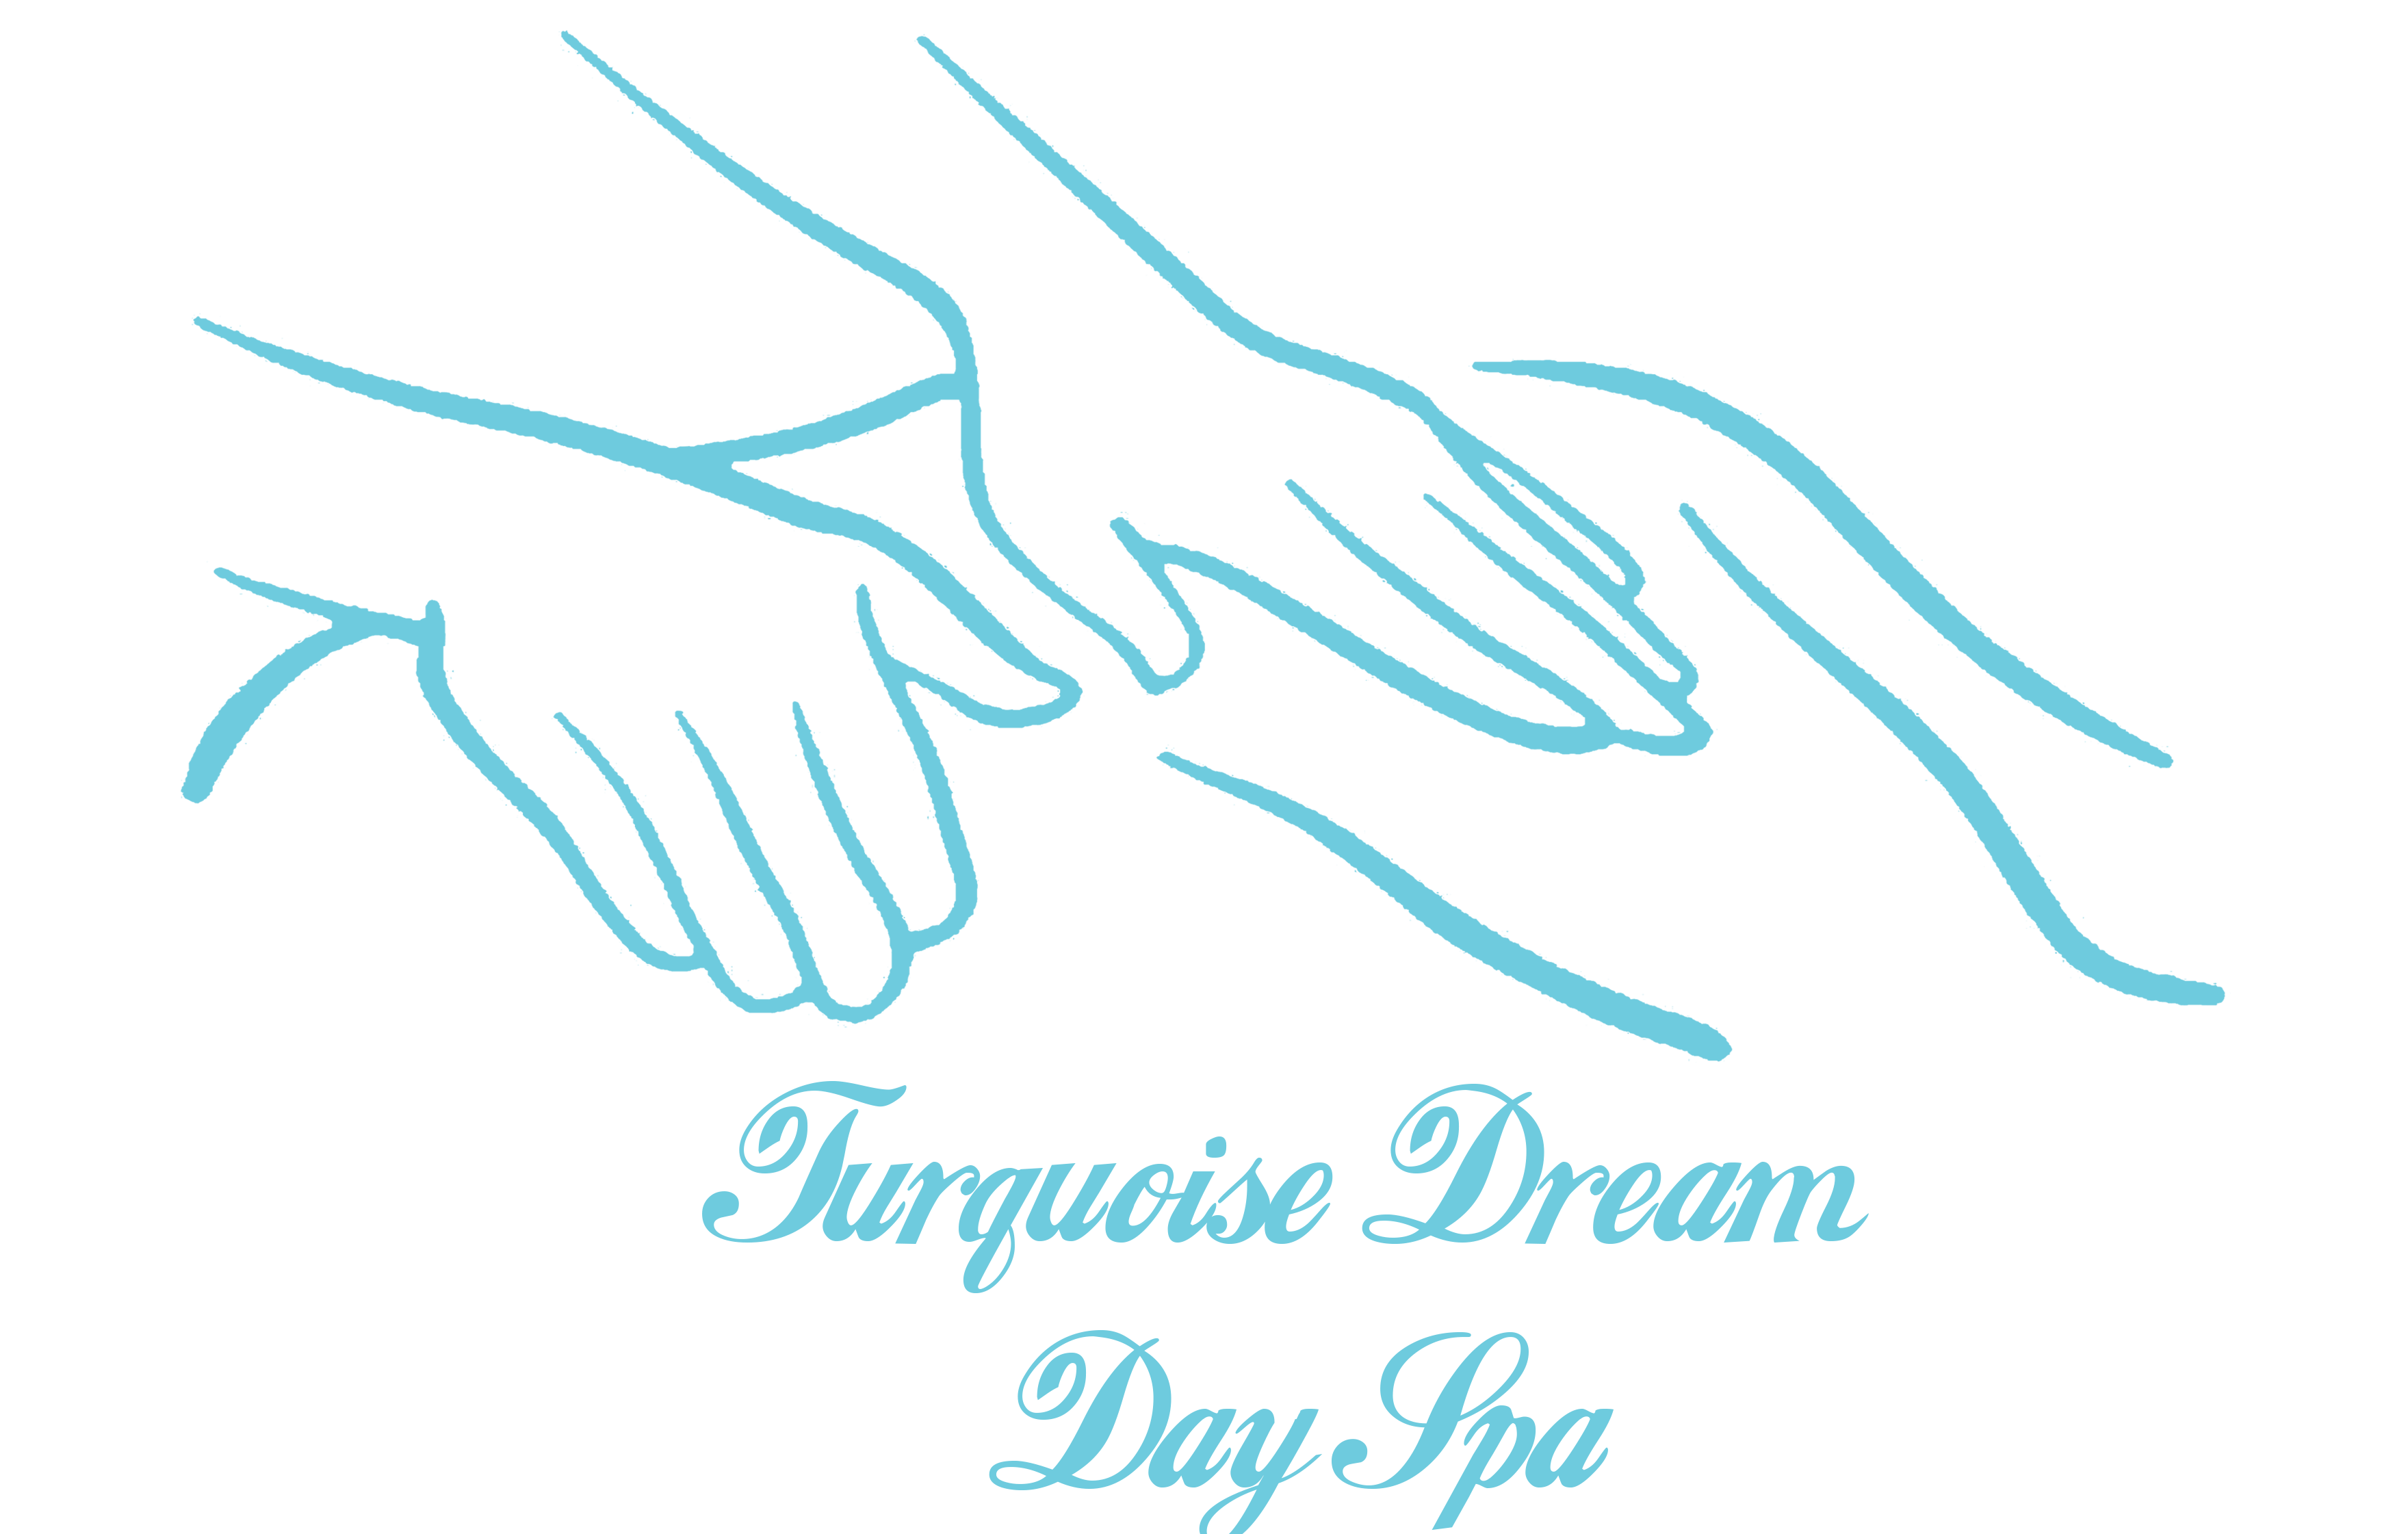 Turquoise Dream Day Spa